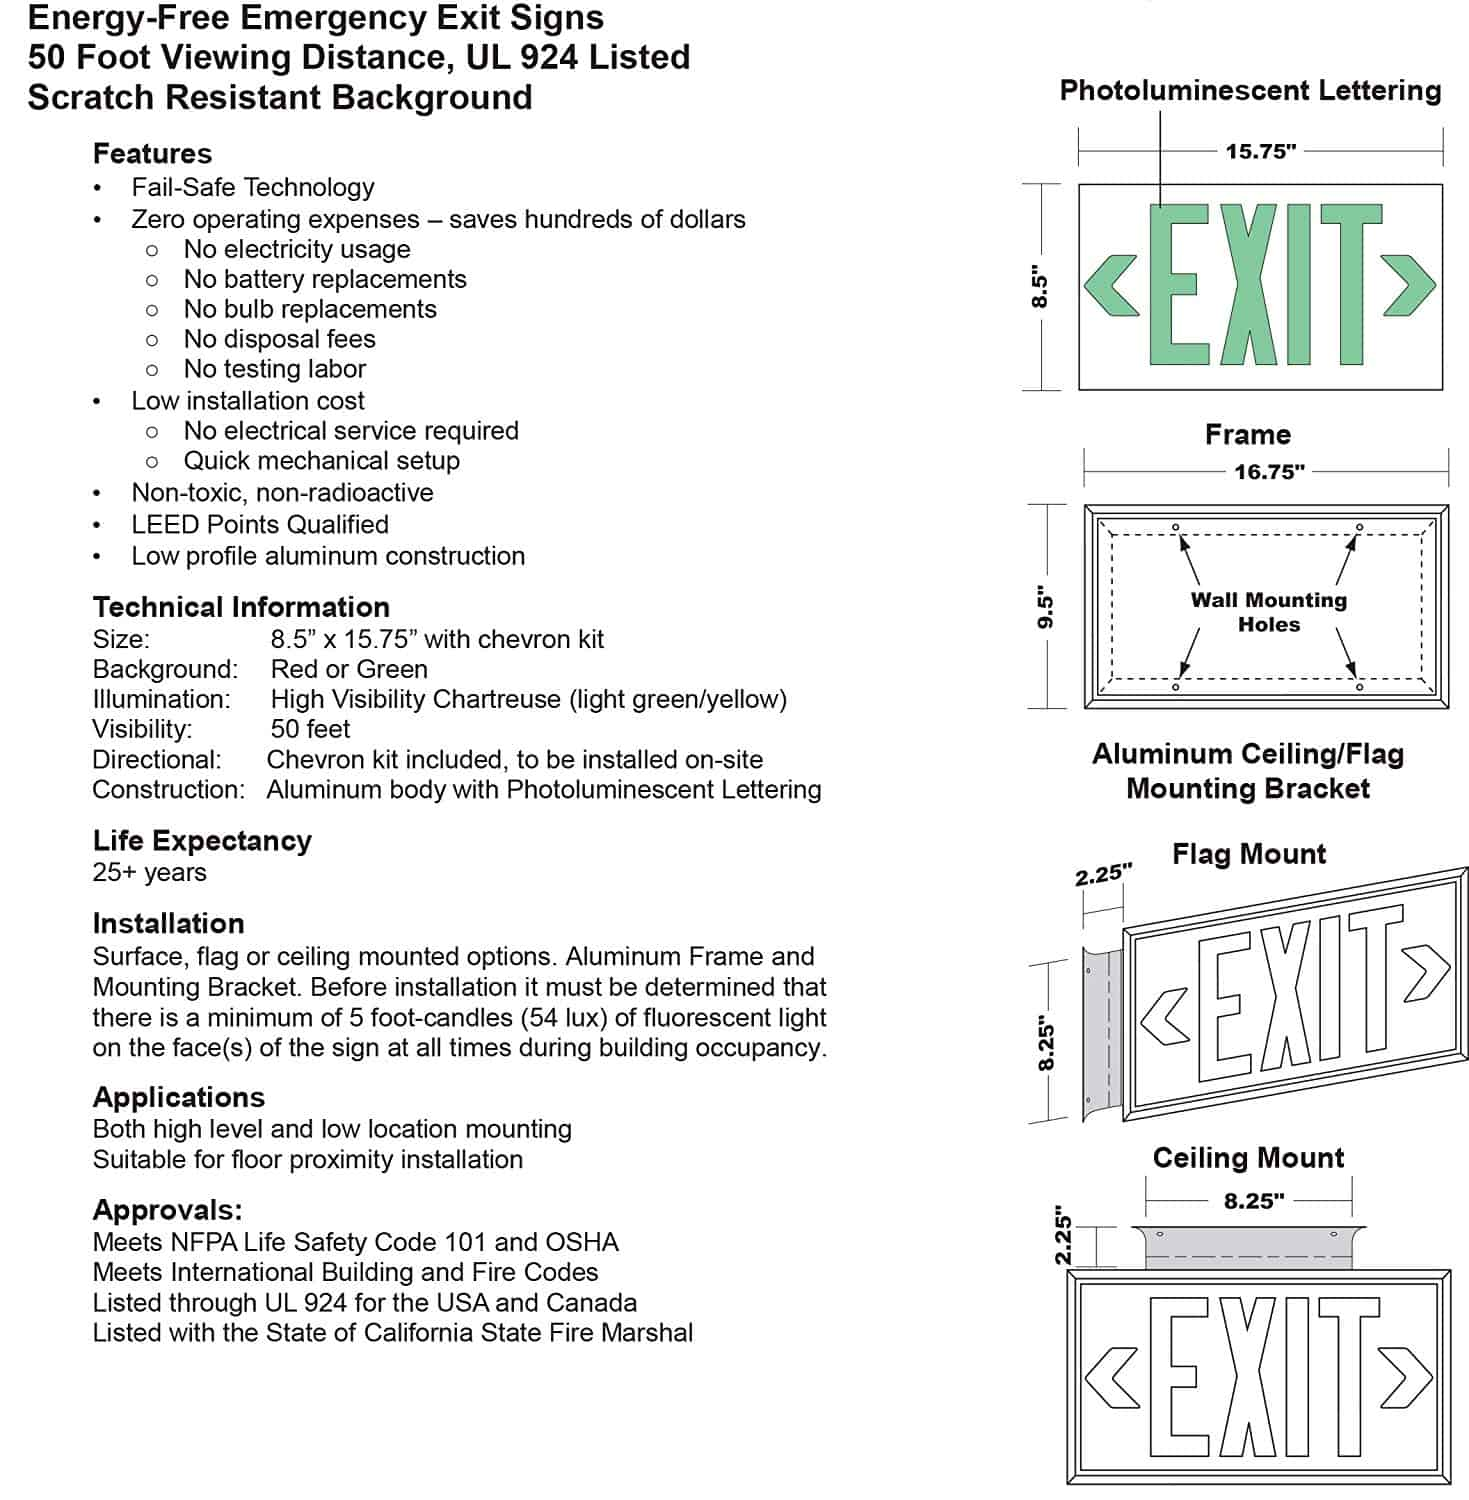 EXIT Sign  Green, 50 Feet, Single Sided with Black Frame & no Mount  (50G-SB-) - Cable Protectors